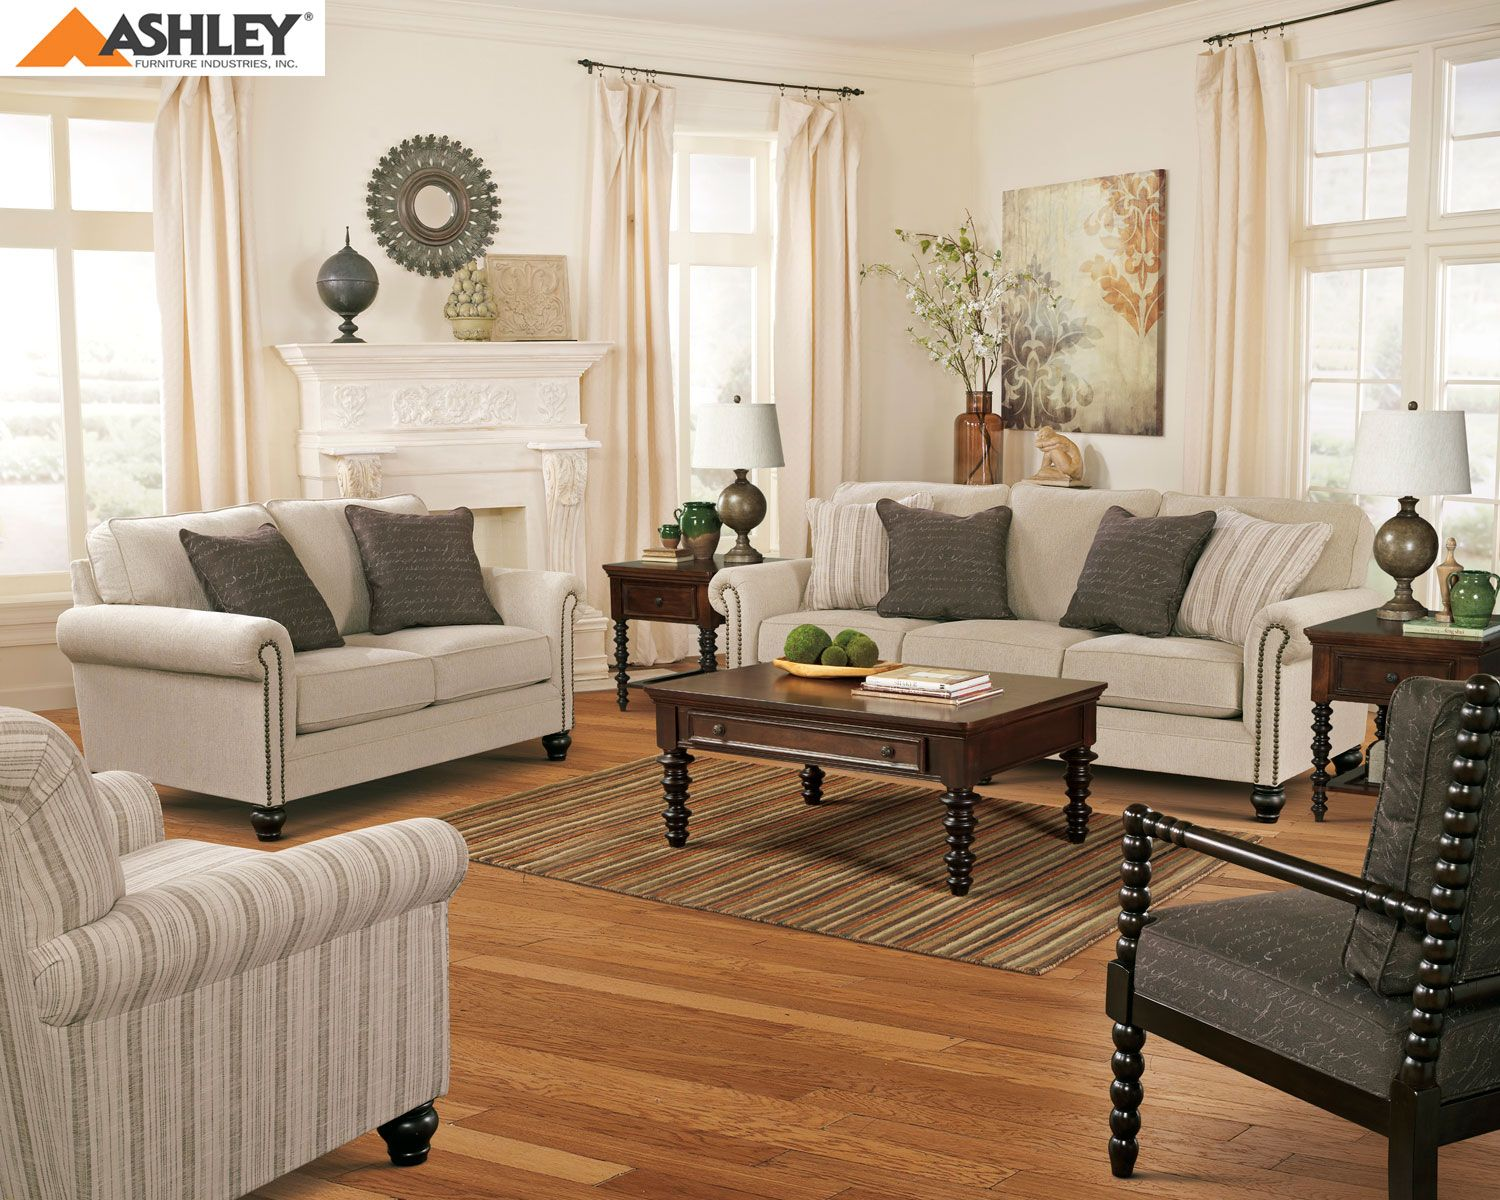 Courts Mauritius  Living room sets, Sofa and loveseat set, Cheap